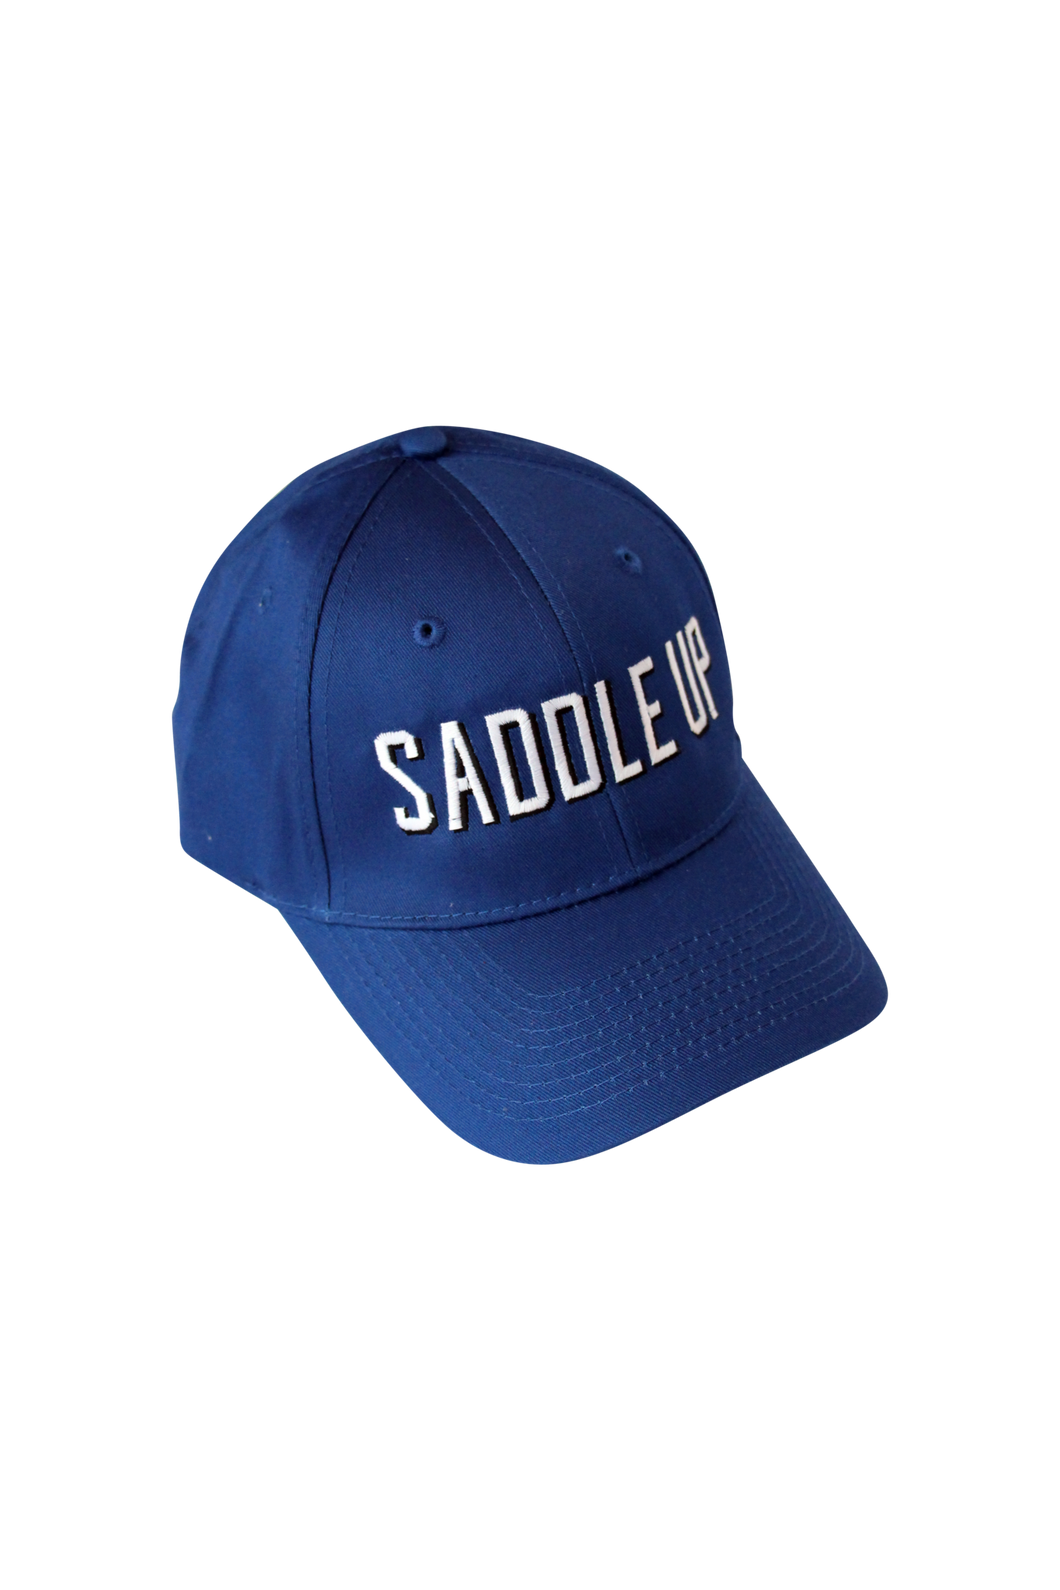 Spiced Equestrian Saddle Up Hat - Royal Blue